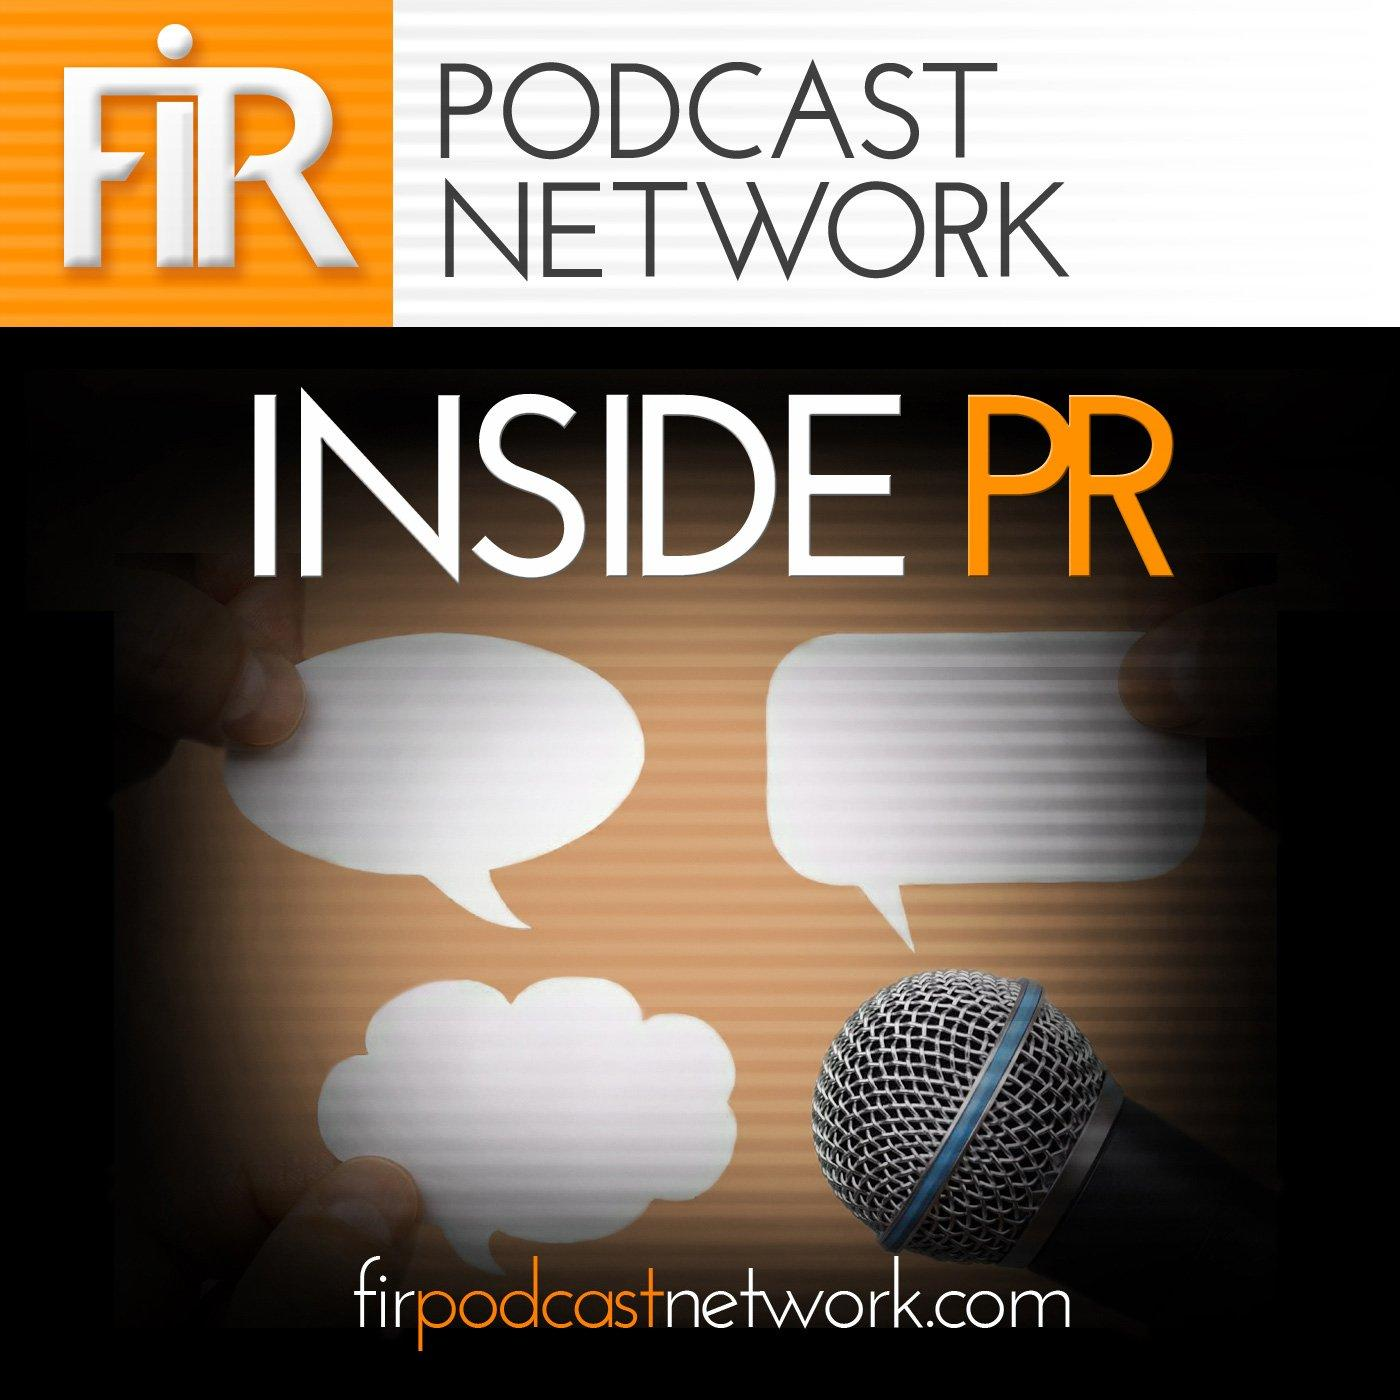 Inside PR 449: Here and App. There and App. Everywhere an App.